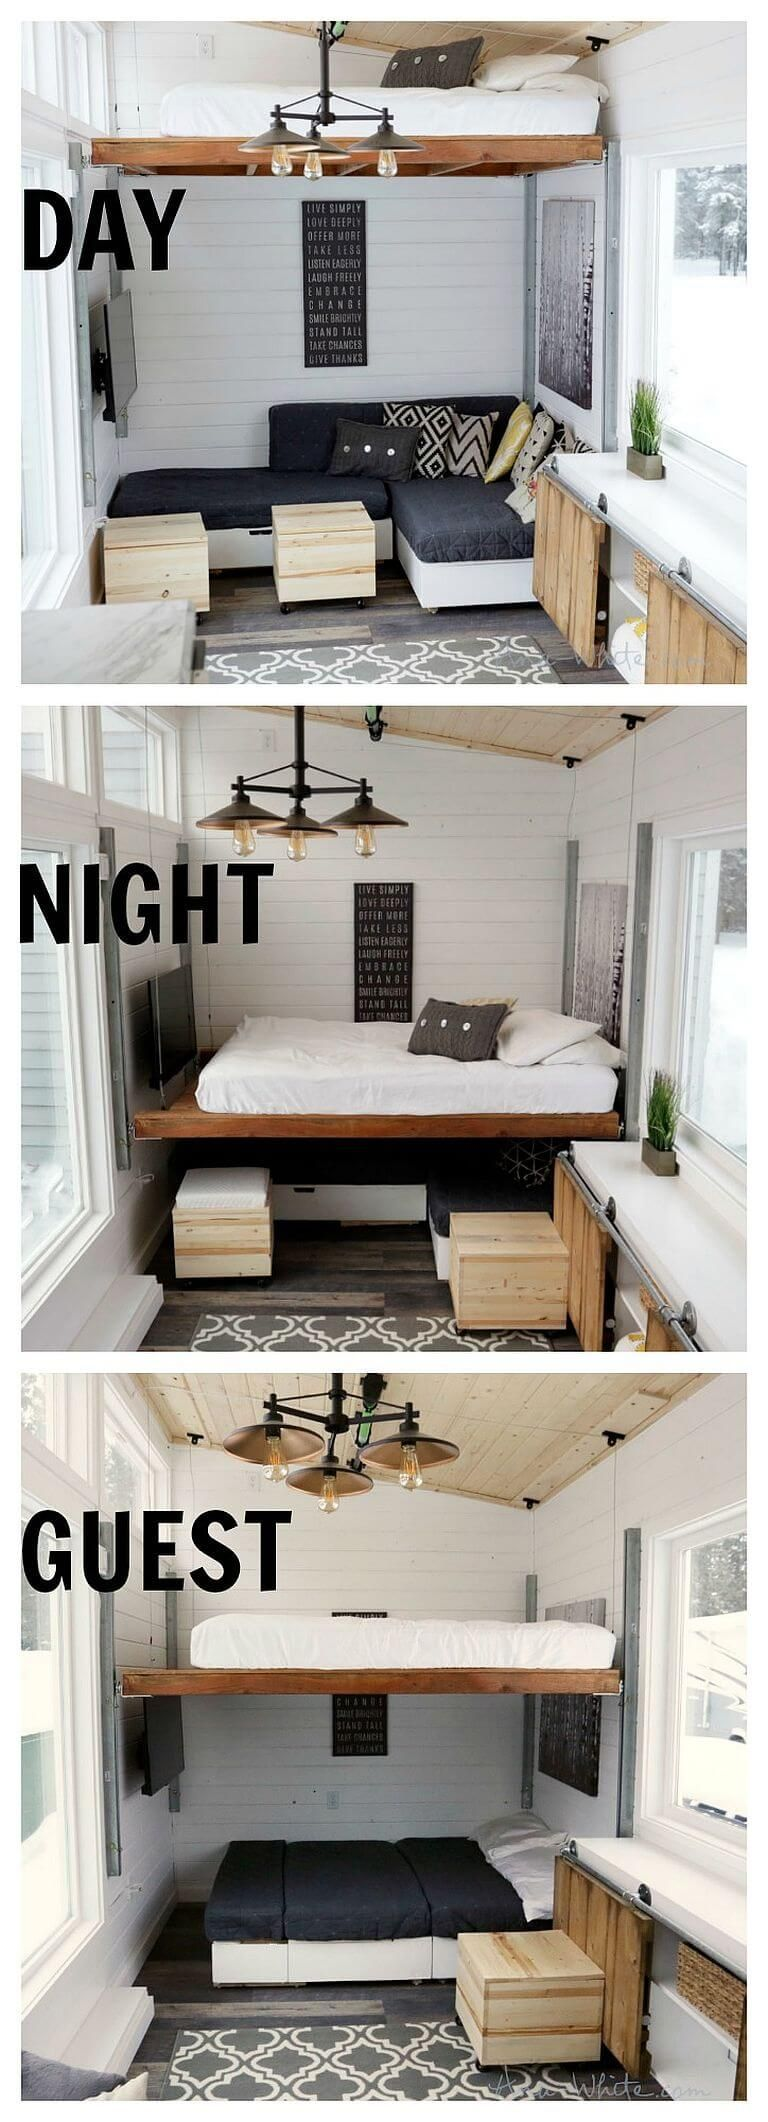 37 Small bedroom designs and ideas for maximizing your little space, the pop